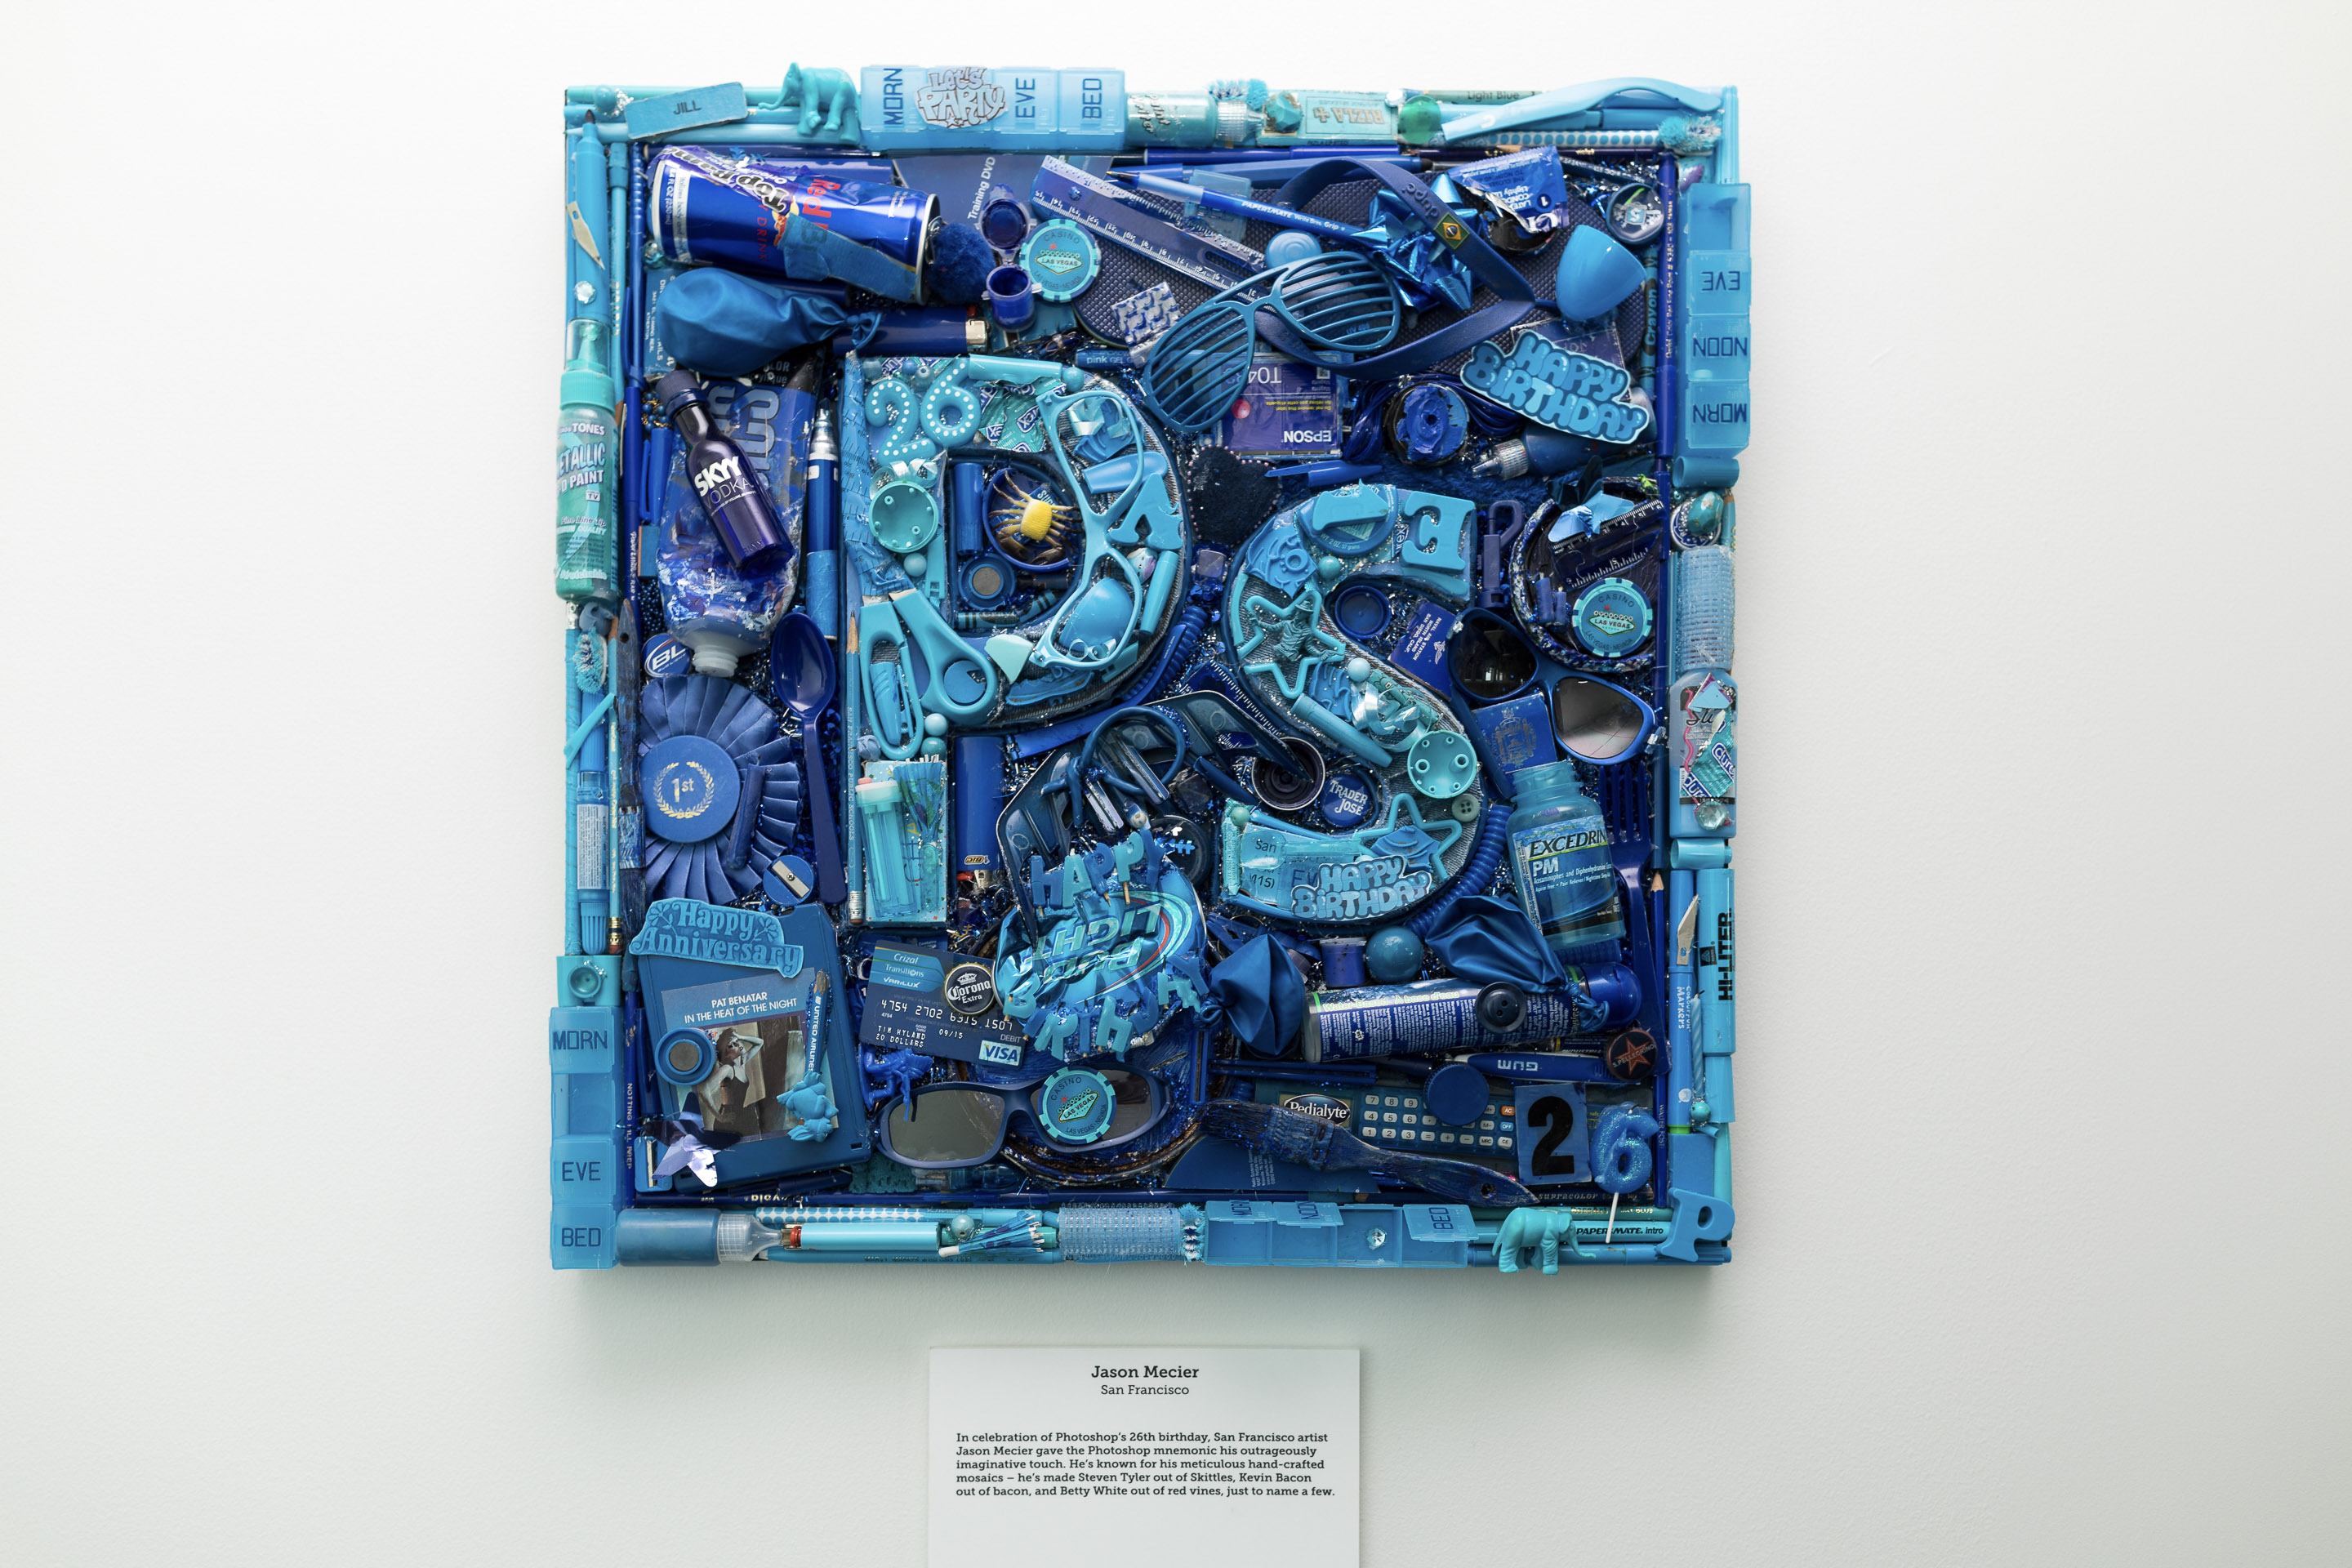 A mosaic of the Photoshop icon